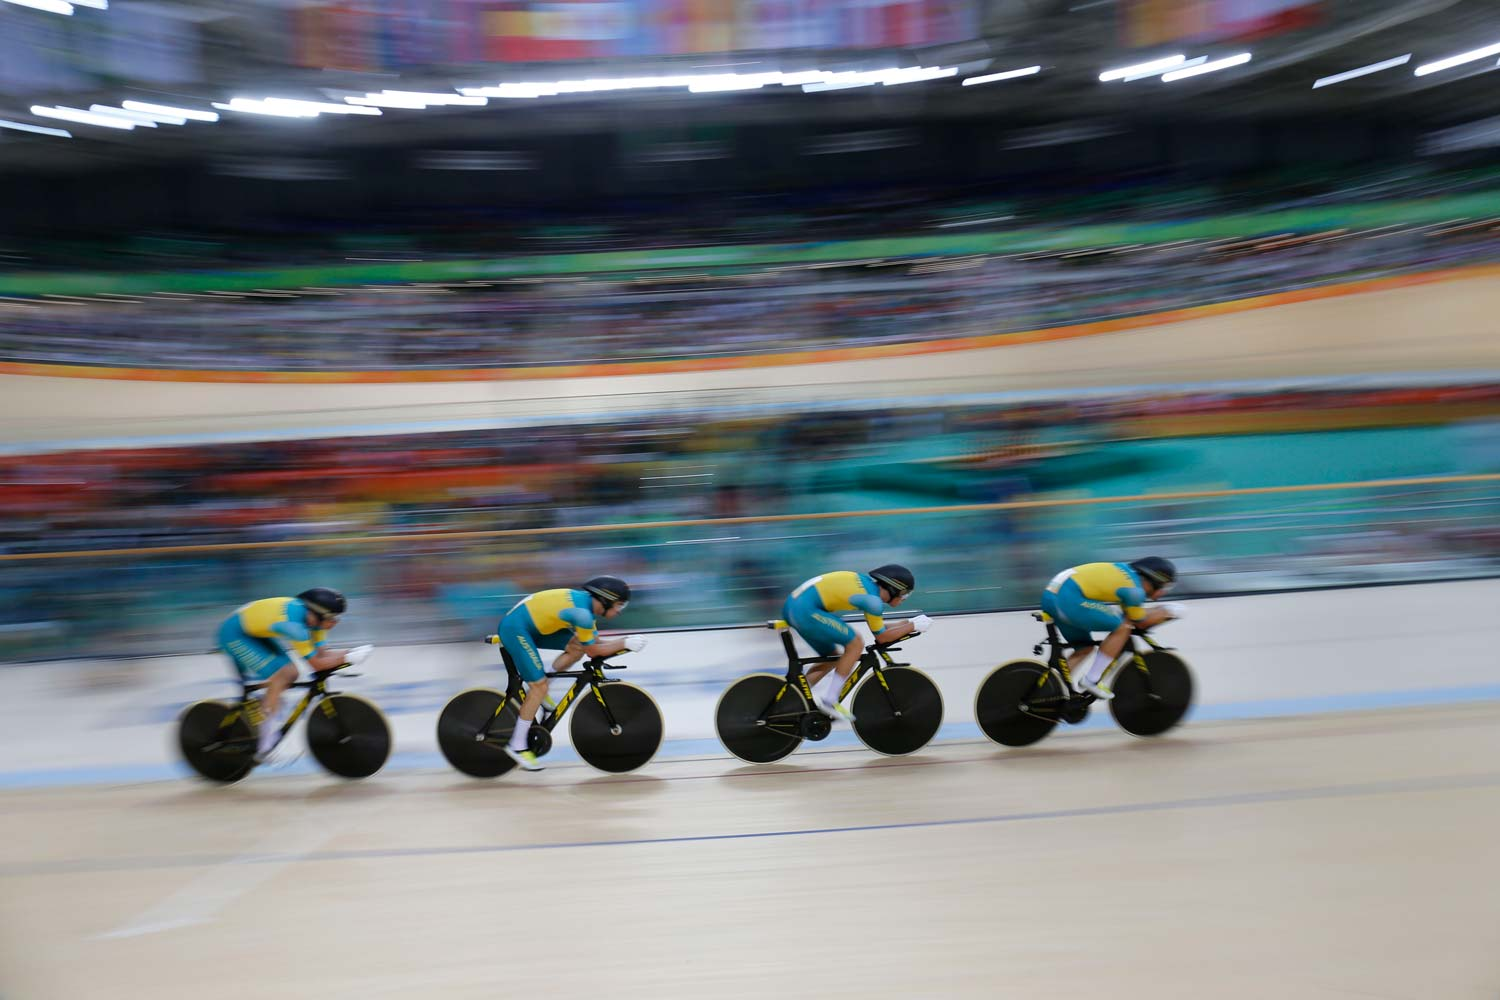 The Australian team pursuit quartet in action on the Olympic velodrome. The men's team earned one of just two medals for the Australian cycling team at the Games in Rio. Photo: Yuzuru Sunada